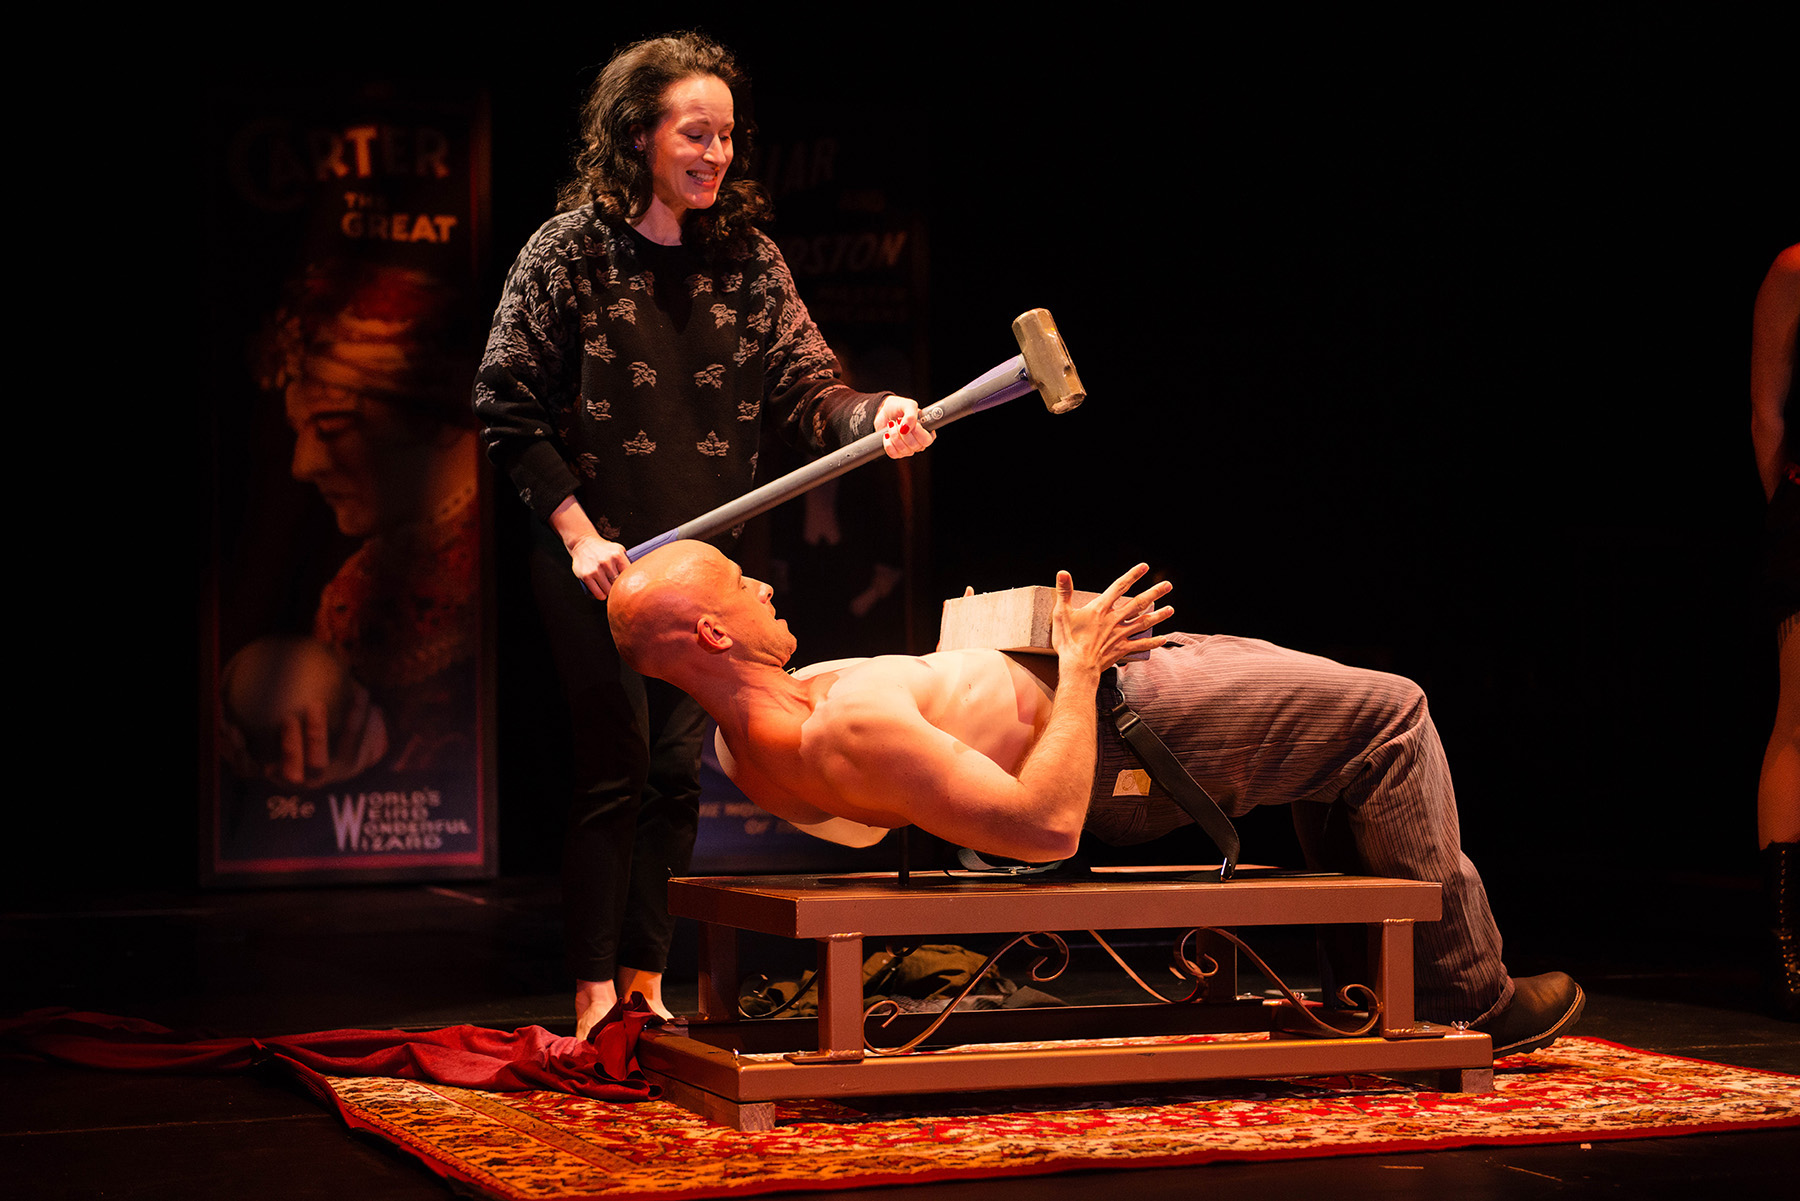 After the excesses of Christmas, one way to prepare for New Year's Eve is to lie on a bed of nails while a friend with a sledgehammer breaks a concrete block over your stomach, but this is risky, so perhaps just watch the pros do it in 'The Illusionists: Magic of the Holidays.' (photo courtesy of The Illusionists)